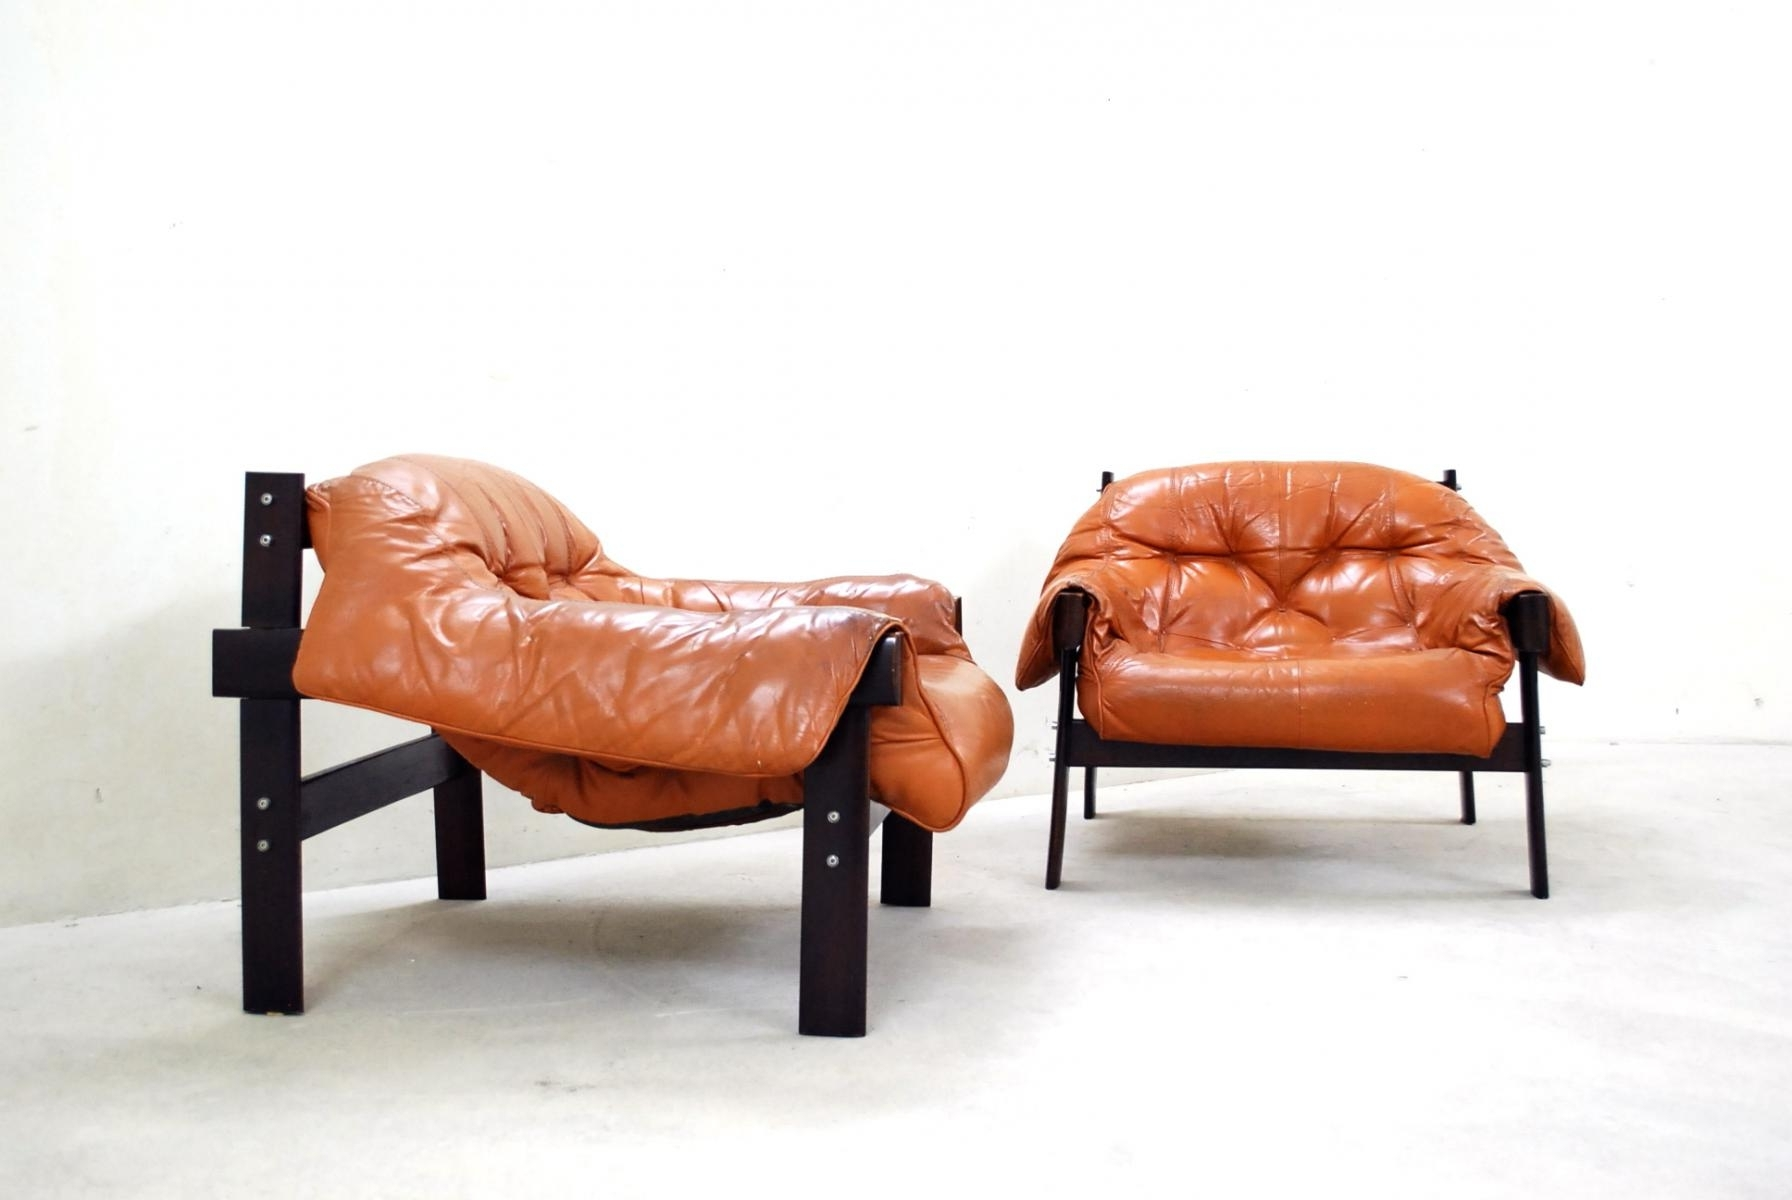 Best And Newest Brazilian Leather Lounge Chairpercival Lafer For Sale At Pamono Regarding Lounge Sofas And Chairs (View 9 of 15)